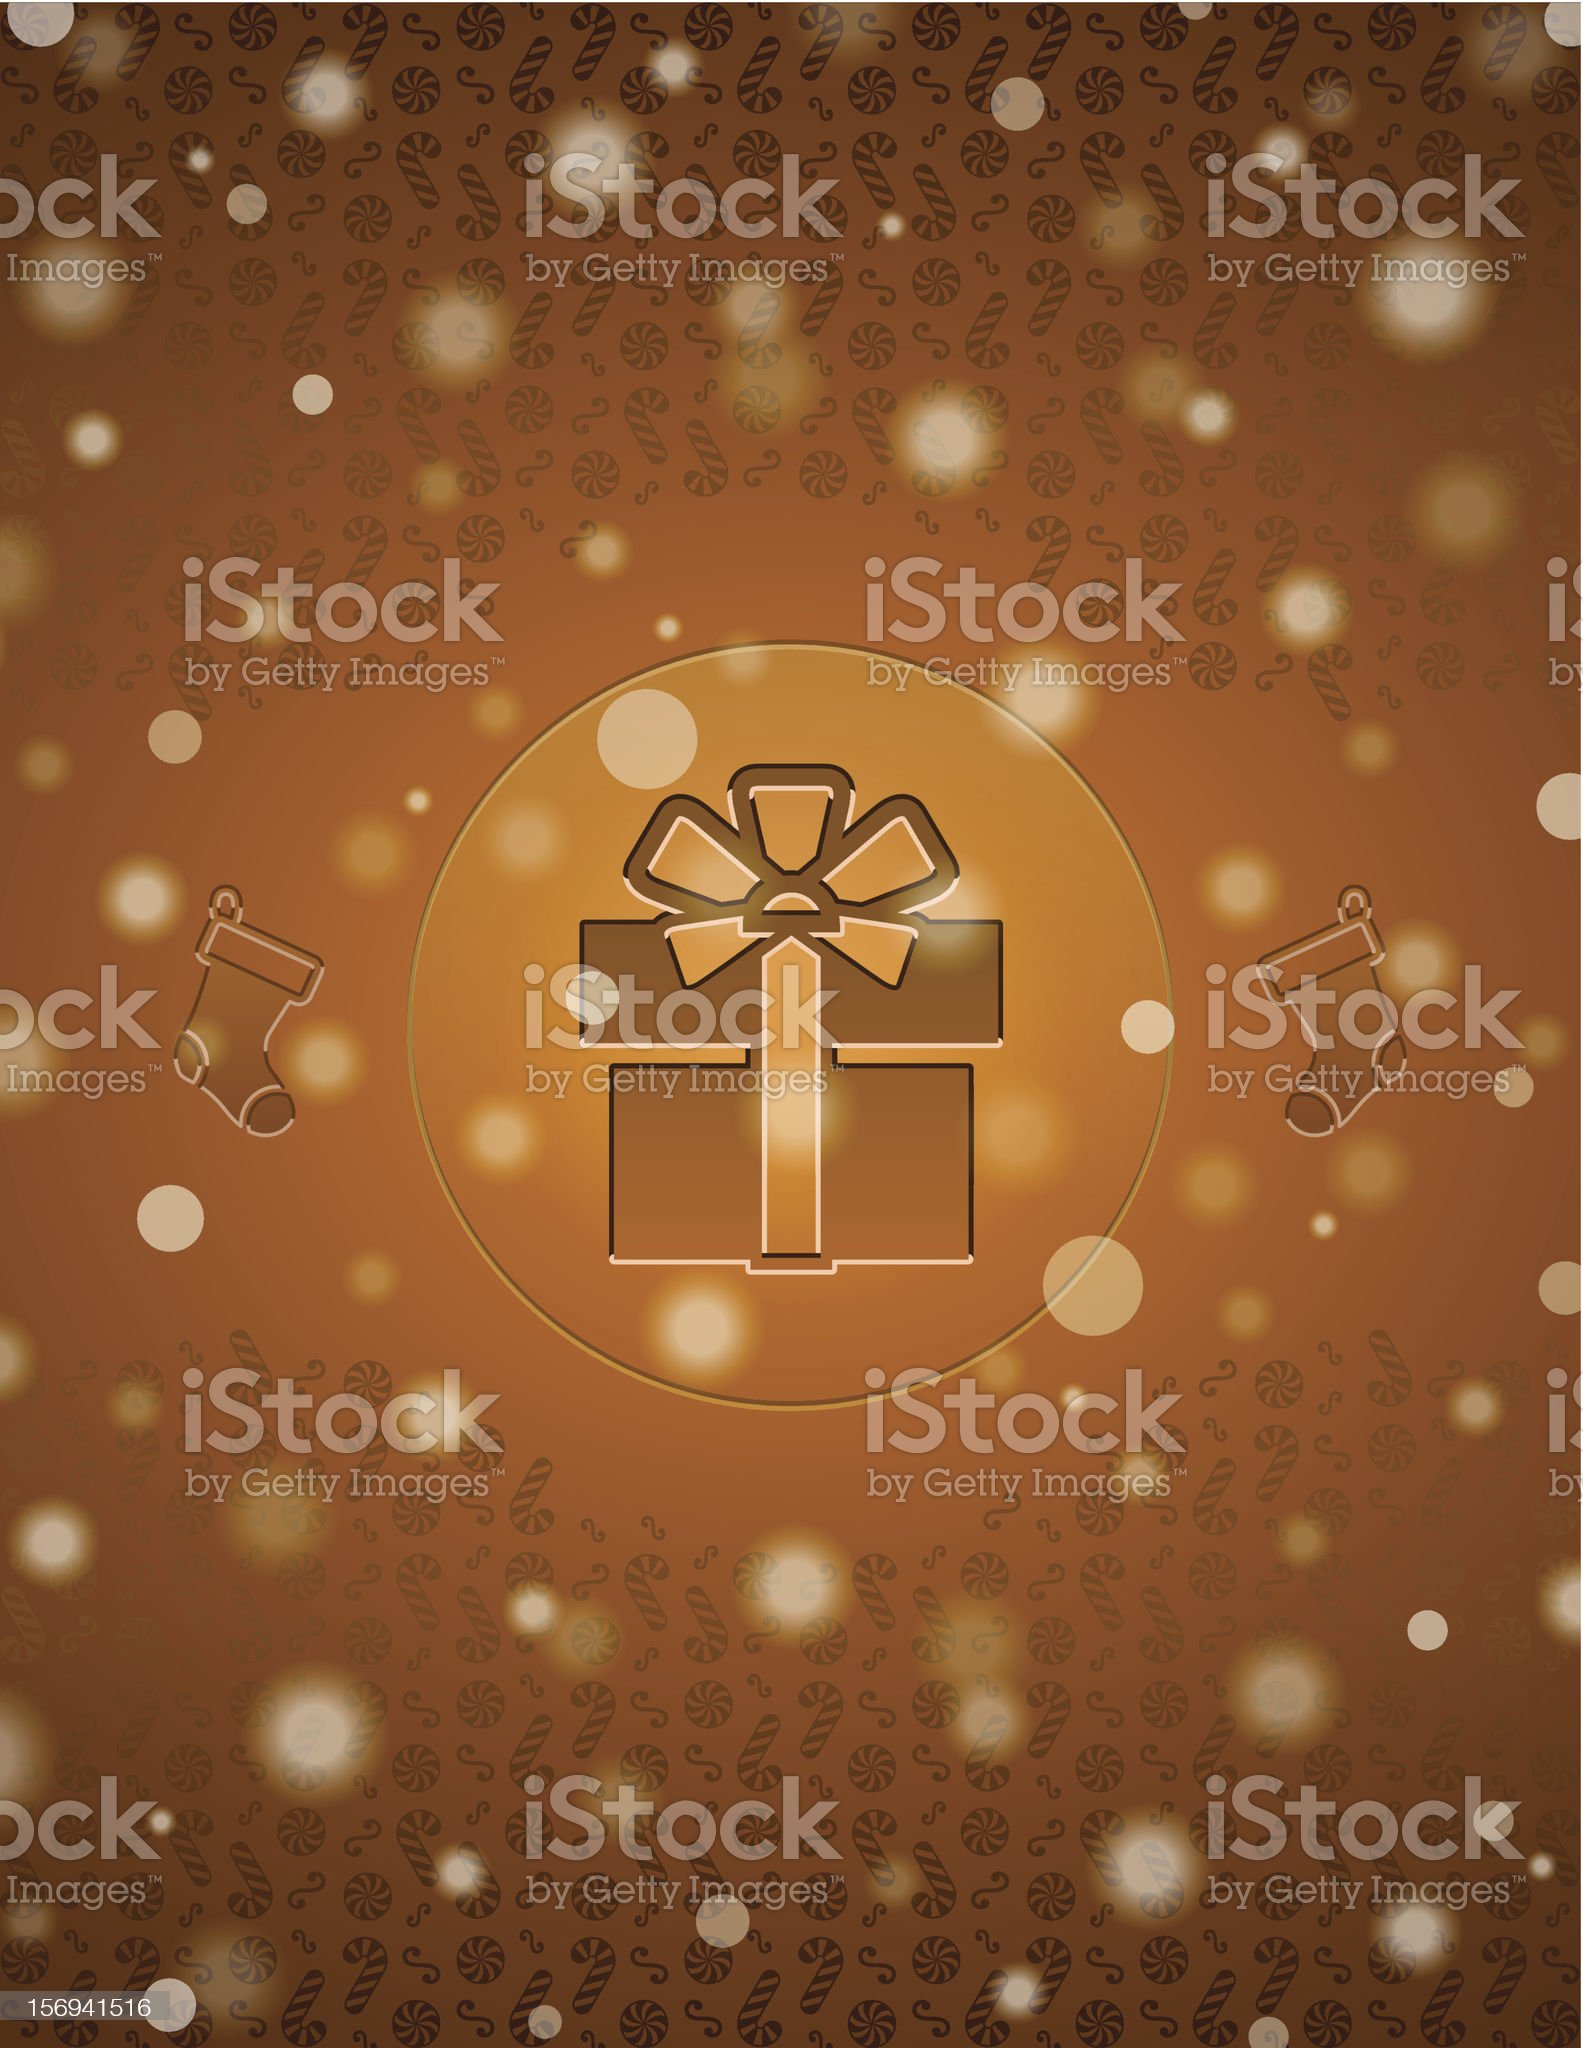 Snow background with gift and christmas stocking royalty-free stock photo